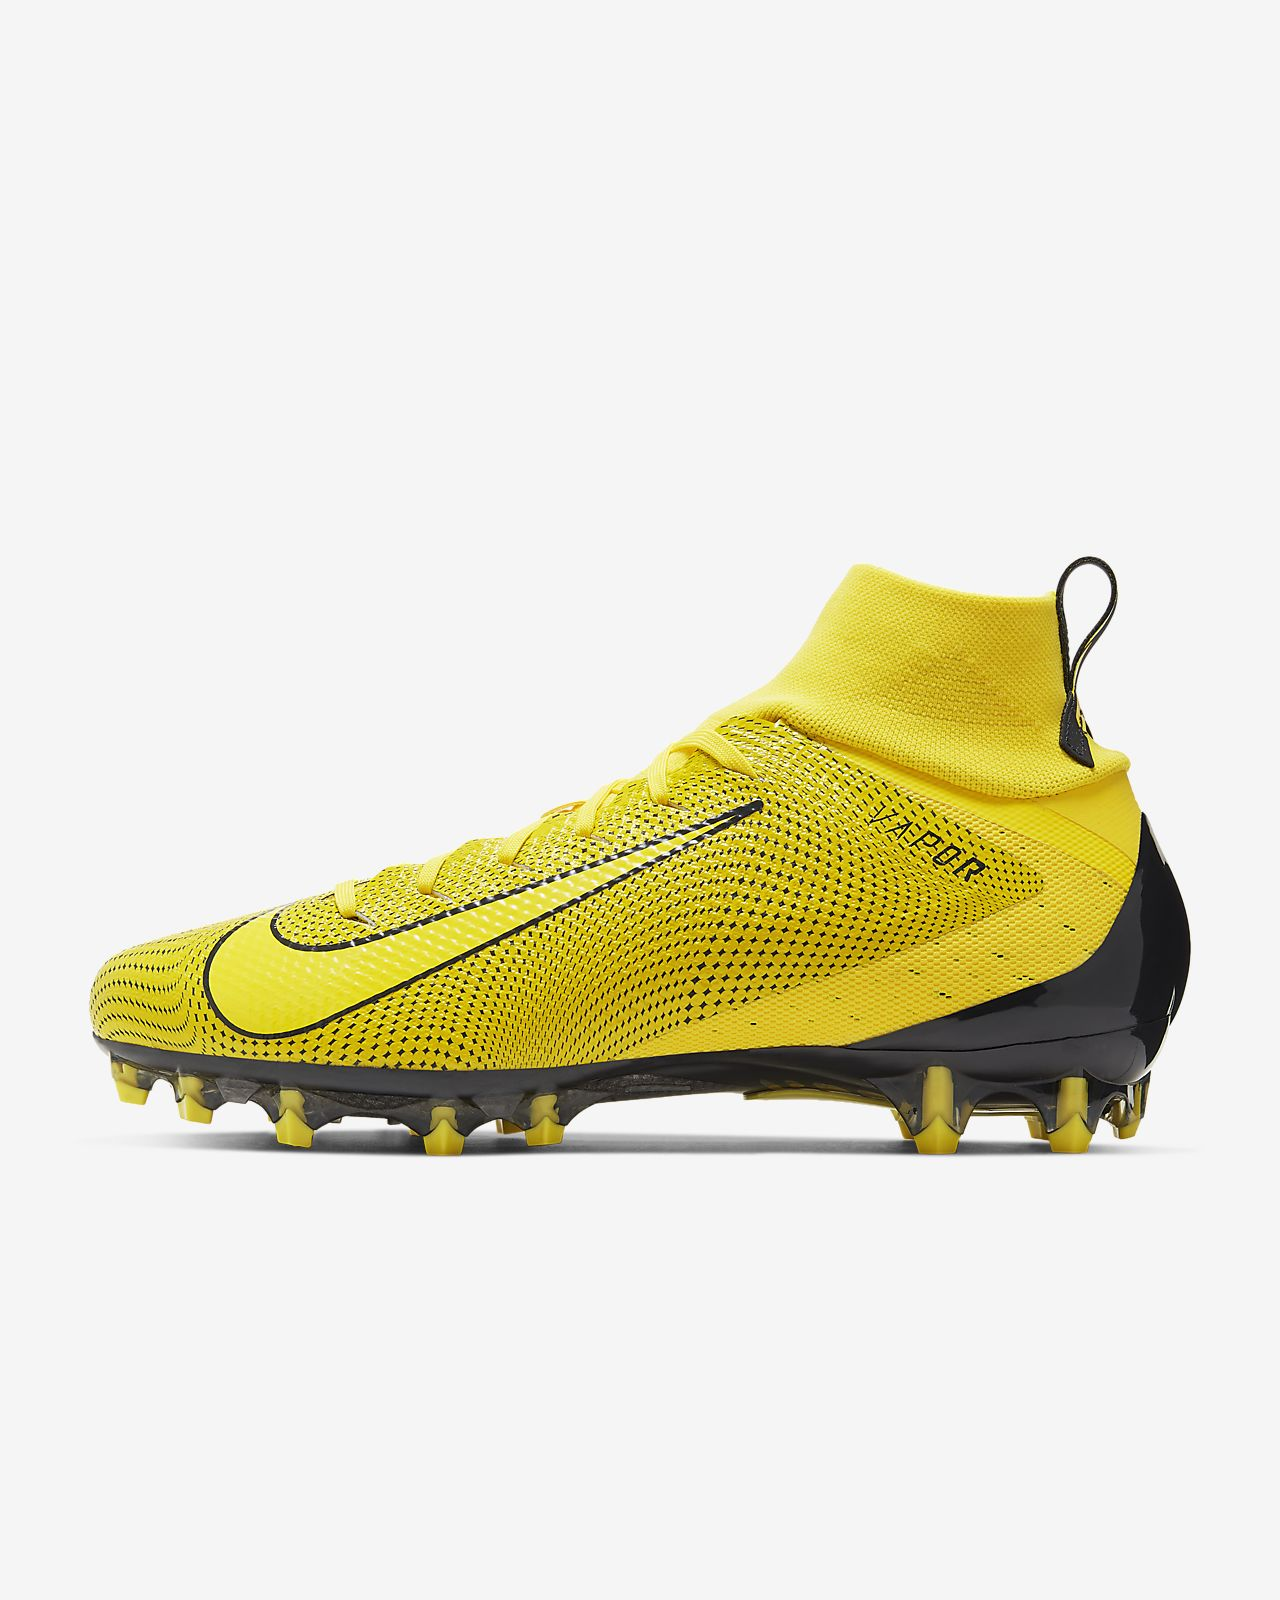 384e5e8a9 Nike Vapor Untouchable 3 Pro Football Cleat. Nike.com